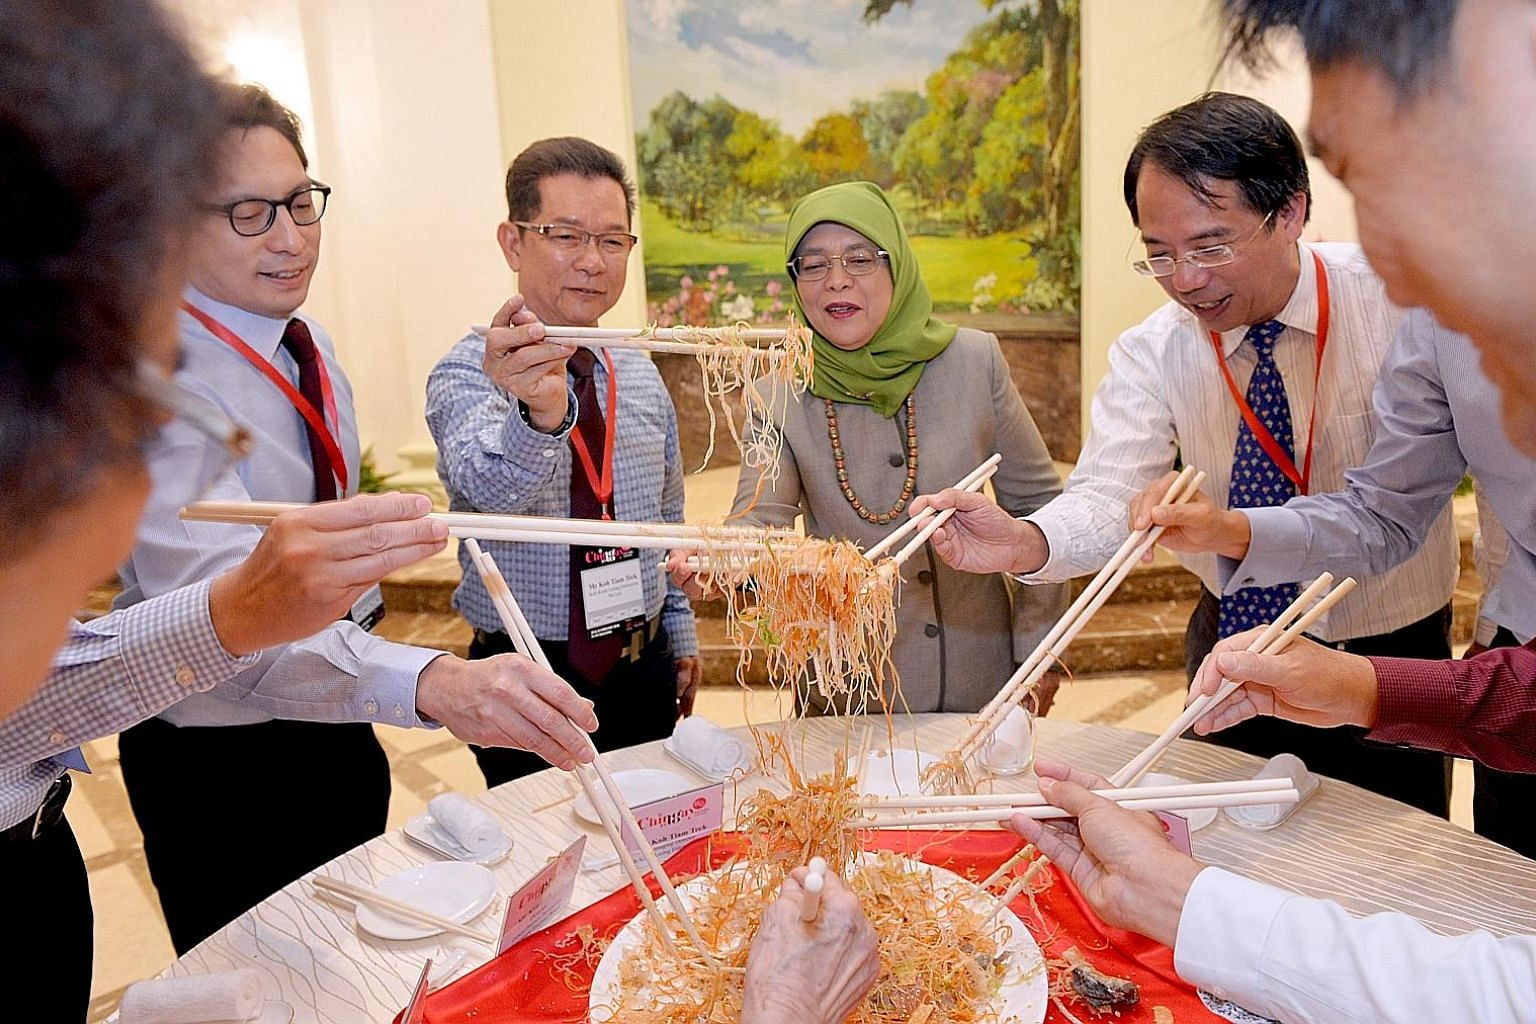 The Chingay parade may be over, but the festive fun continued at the Istana yesterday, with President Halimah Yacob thanking key contributors of this year's parade by inviting them to lunch and joining them to toss yusheng for good fortune. With her